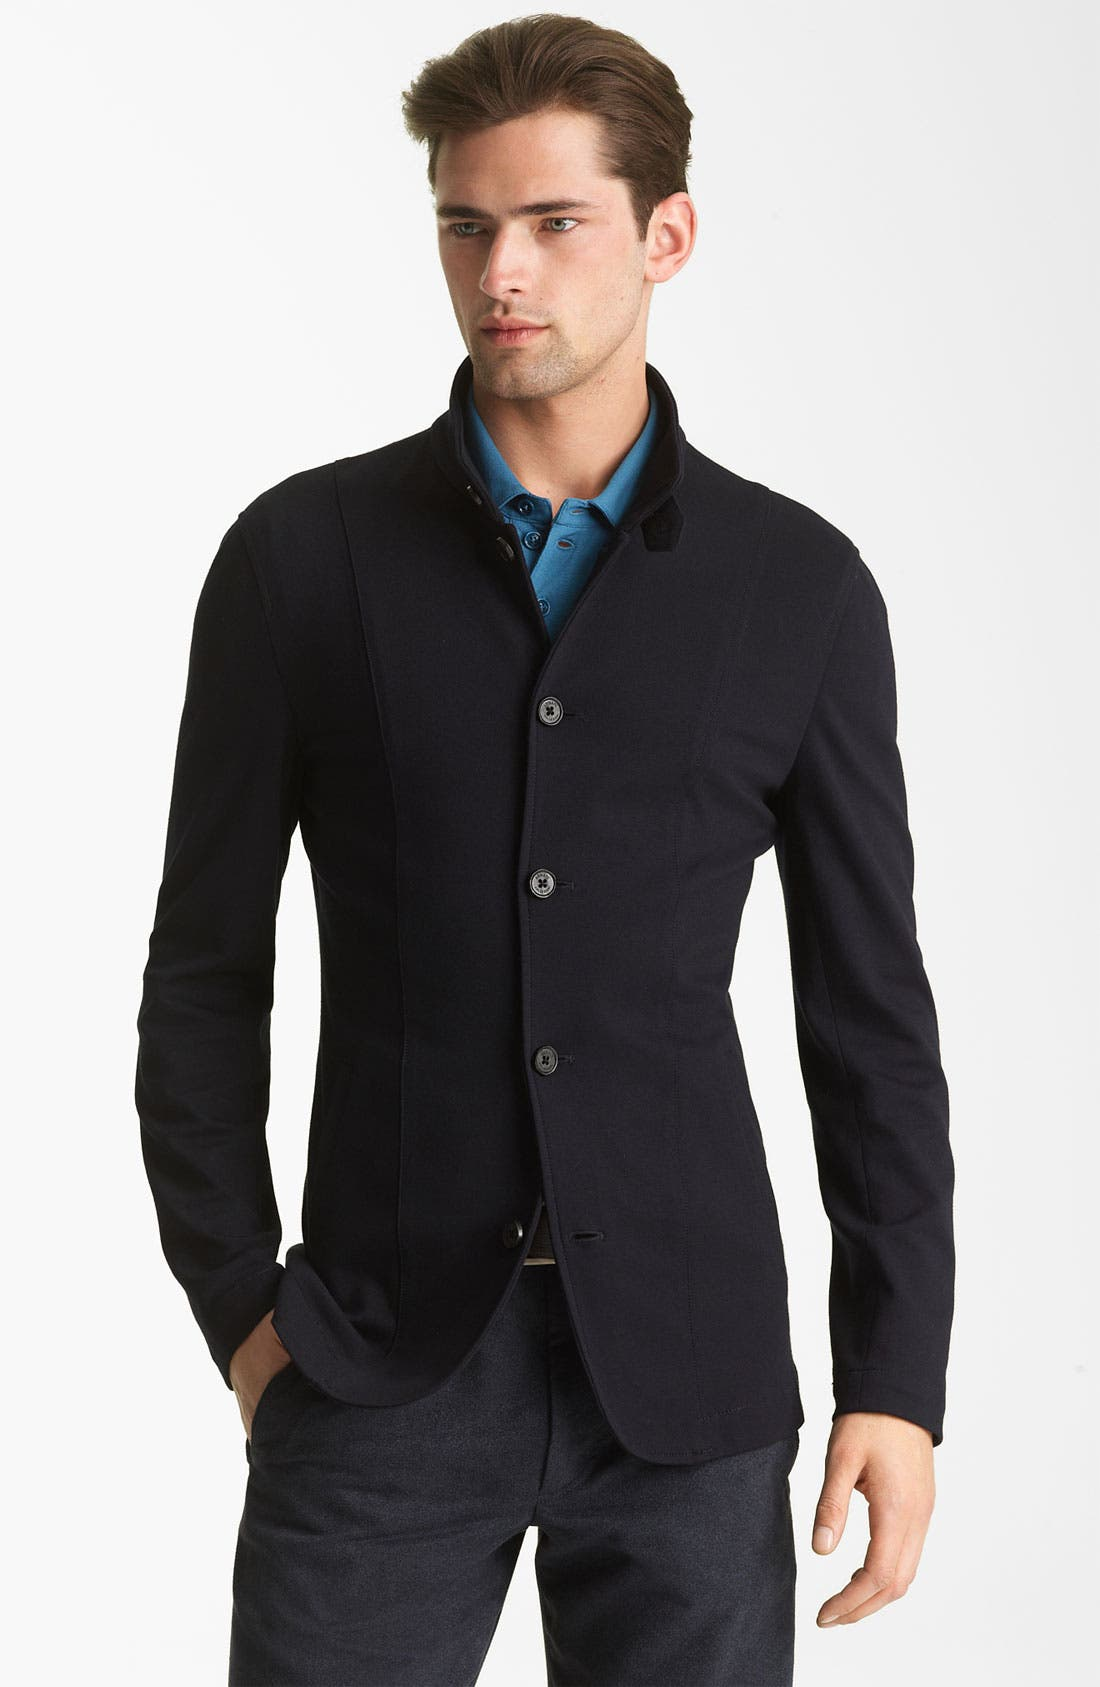 Alternate Image 1 Selected - Armani Collezioni Jersey Knit Jacket